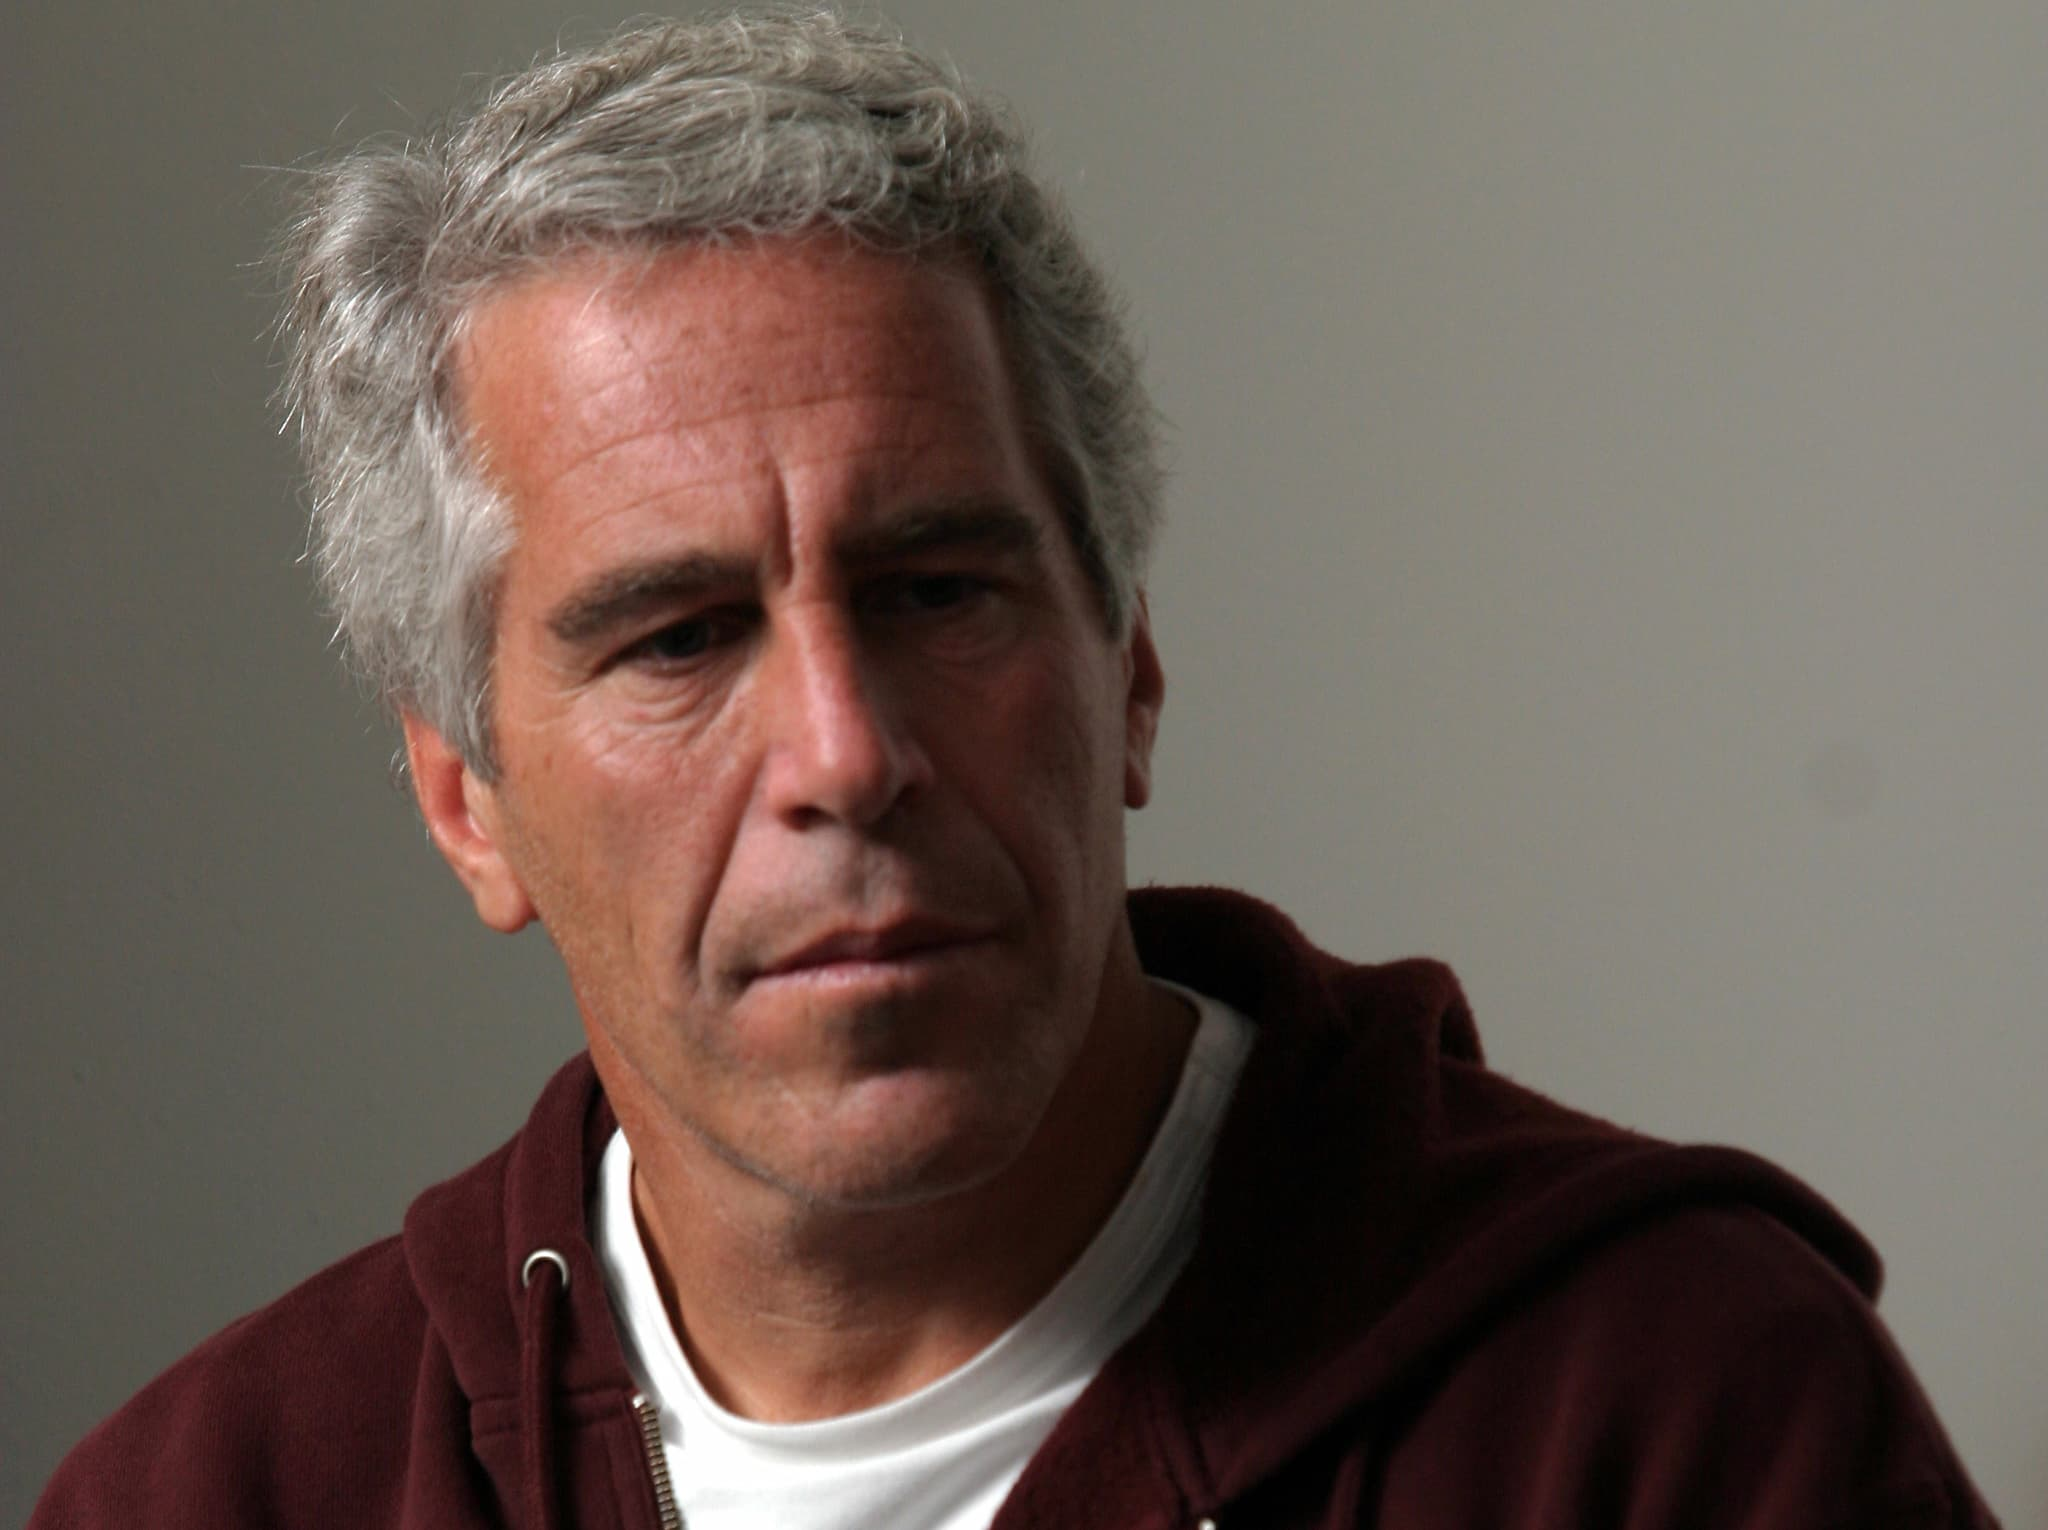 Jeffrey Epstein seen with young girls on his plane in 2018 as authorities eyed his travel abroad